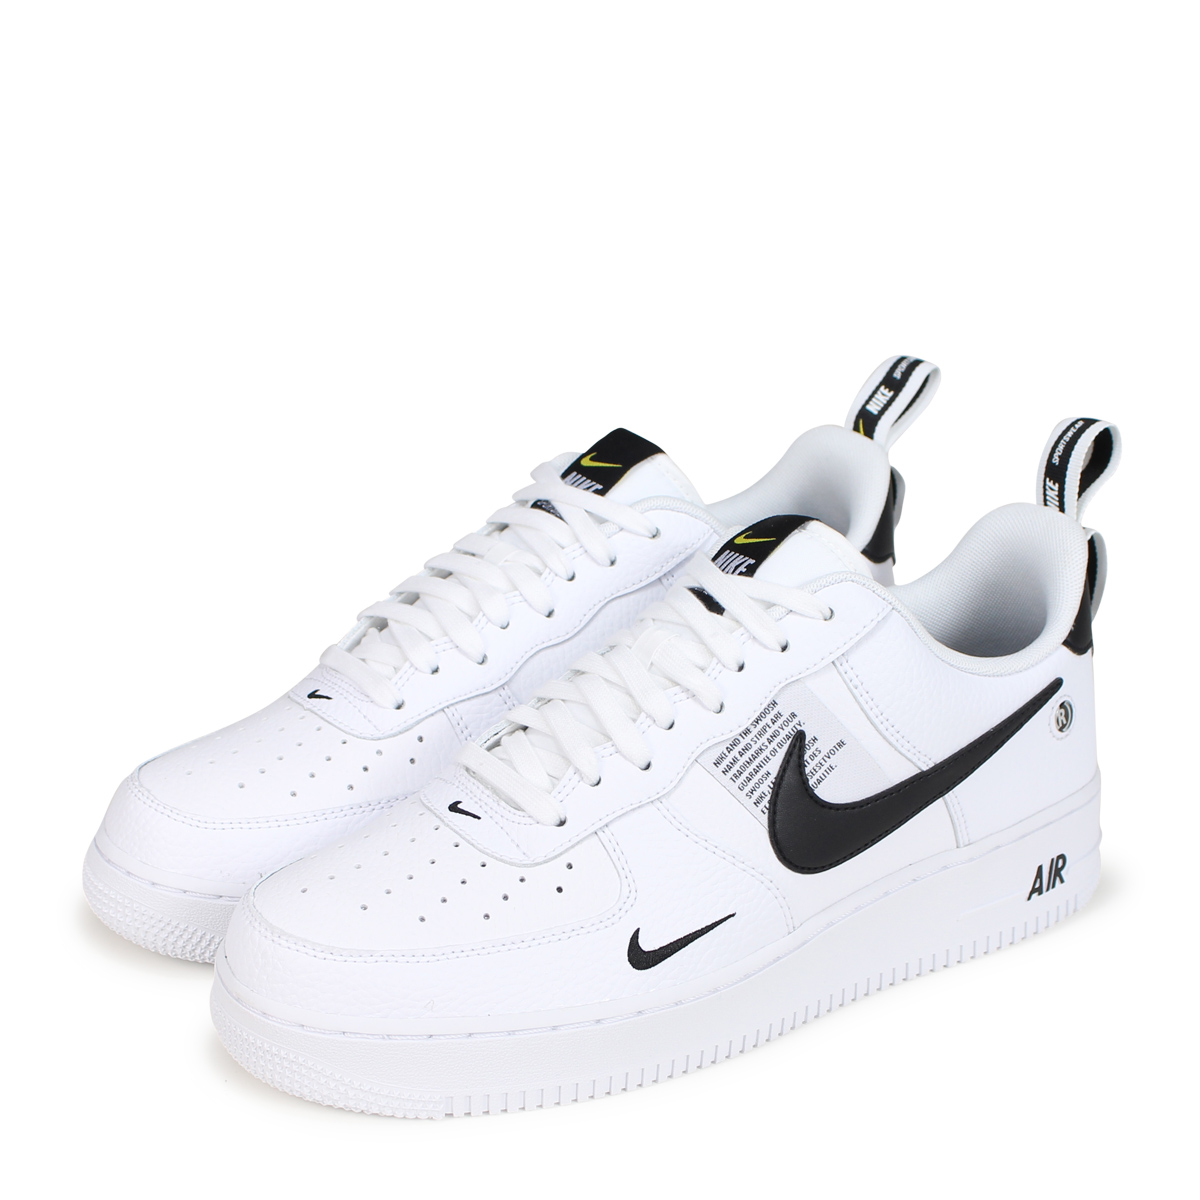 2scarpe nike air force 1 lv8 utility